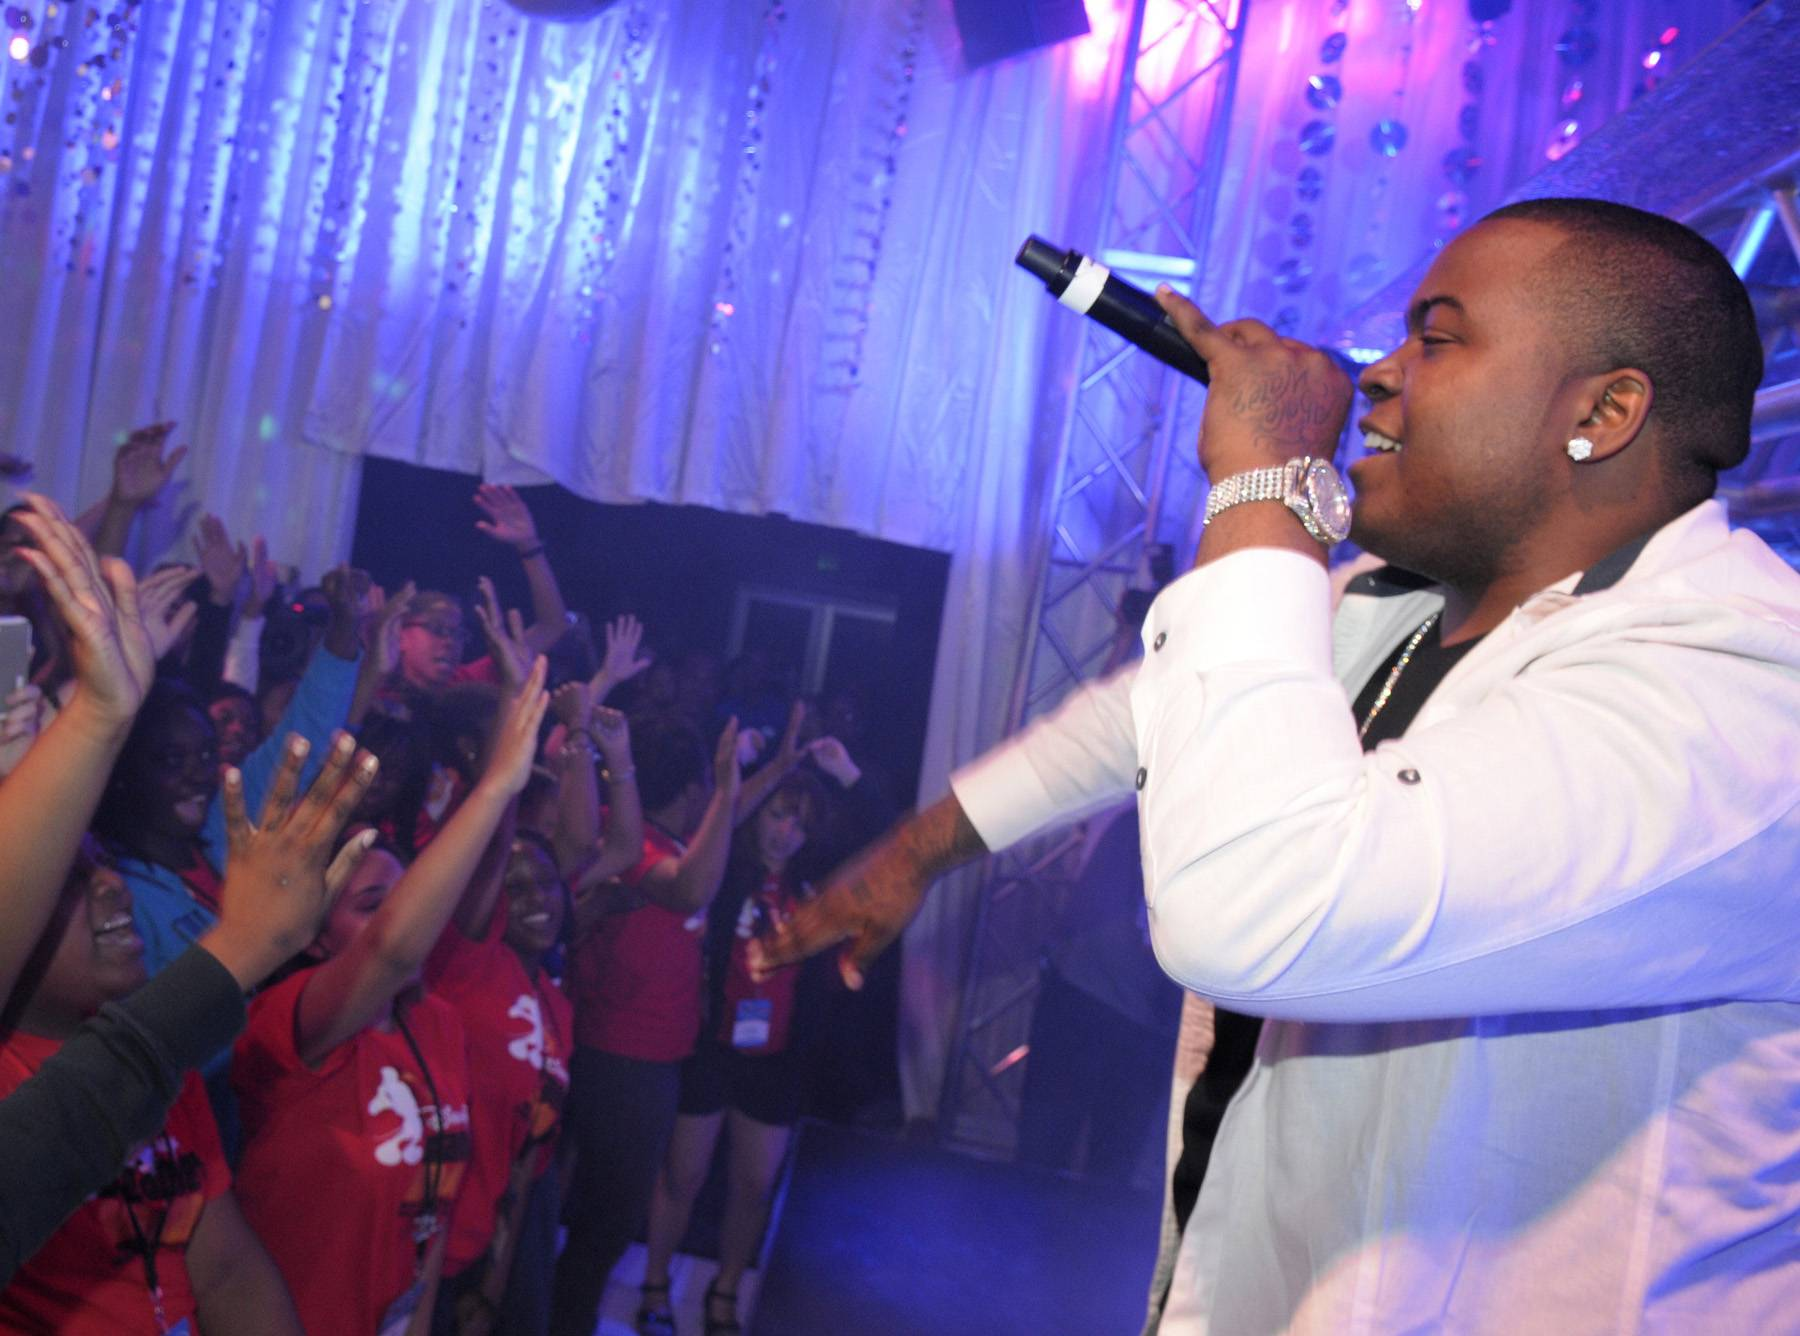 Sean Kingston, Recording Artist - ?There are times and tribulations where you want to give up and don?t want to chase your dream because you feel like it?s taking too long or it?s not going to come. In reality, you?ve just got to keep motivated and keep God first.? (Photo: Phelan Ebenhack/Disney)